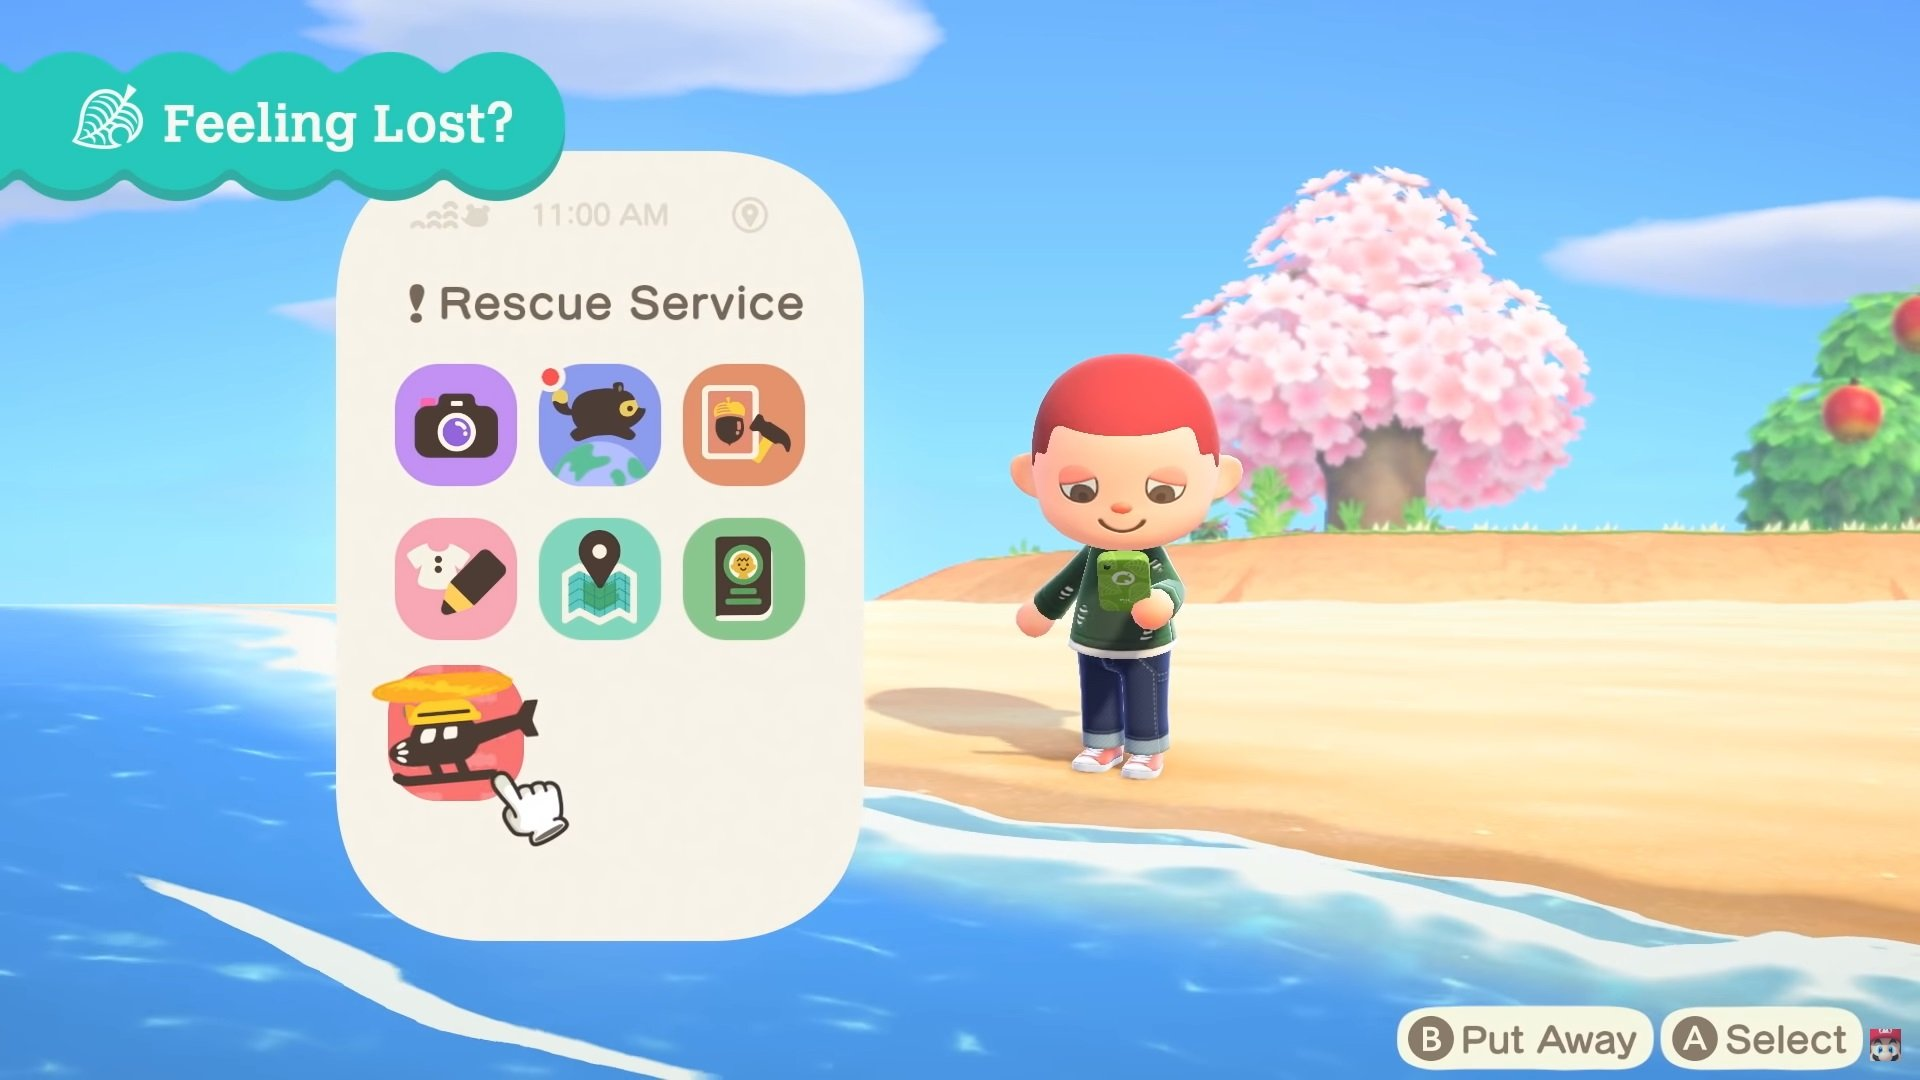 How to fast travel using Rescue Services in Animal Crossing: New Horizons